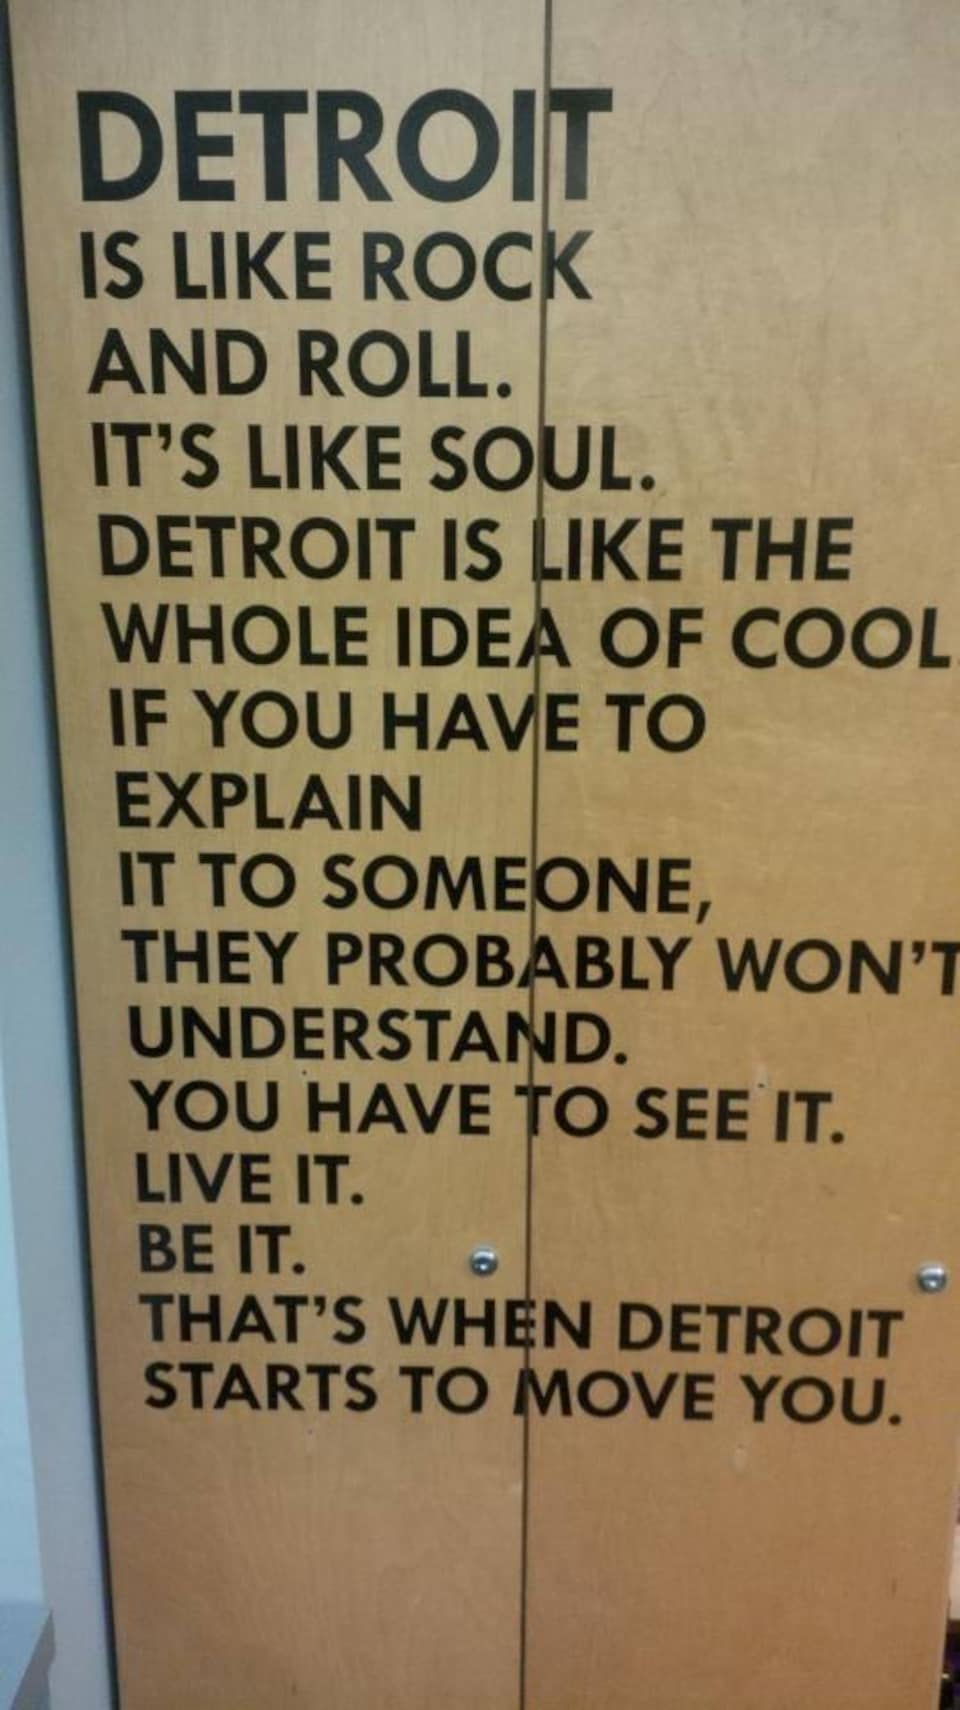 Sur l'affiche, on peut lire : «Detroit is like rock and roll. It's like soul. Detroit is like the whole idea of cool if you to explain it to someone, they probably won't understand. You have to see it. Live it. Be it. That's when Detroil starts to move you.»